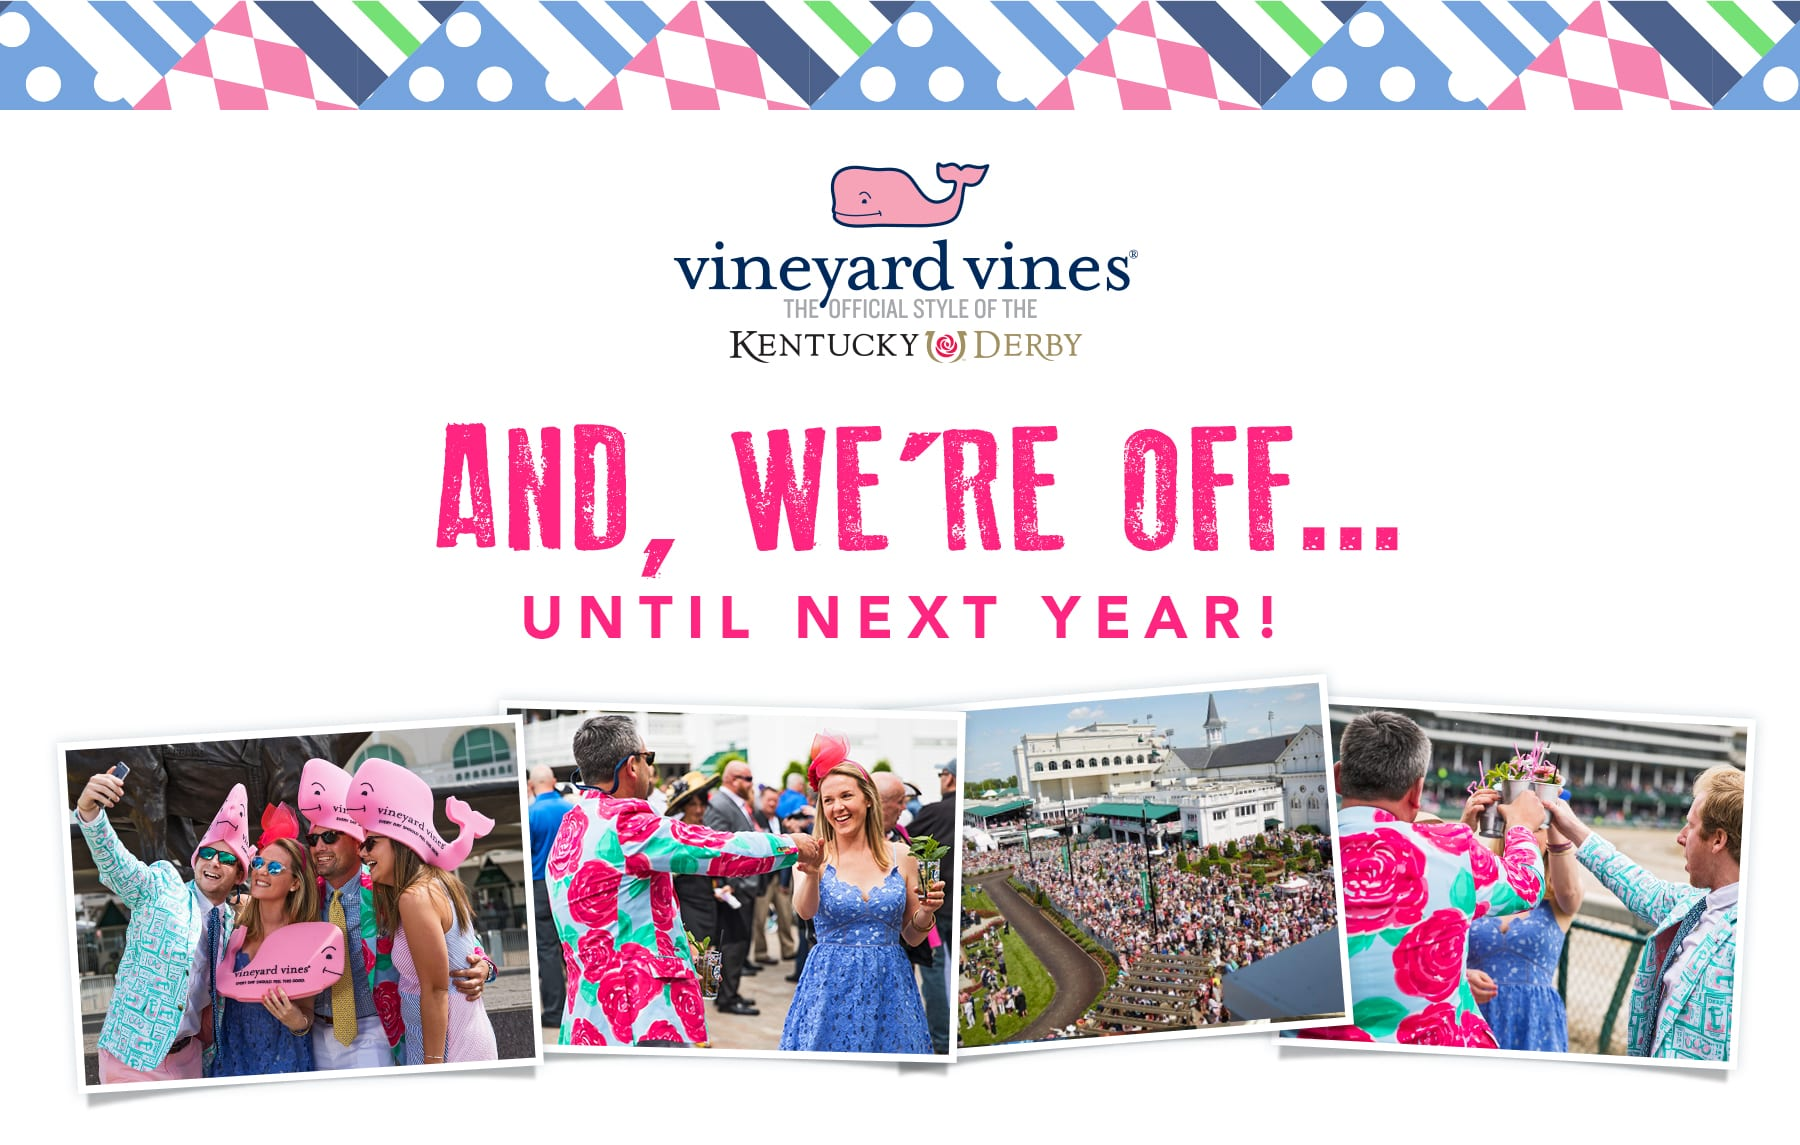 vineyard vines. The official style of the Kentucky Derby. And, we're off... until next year!